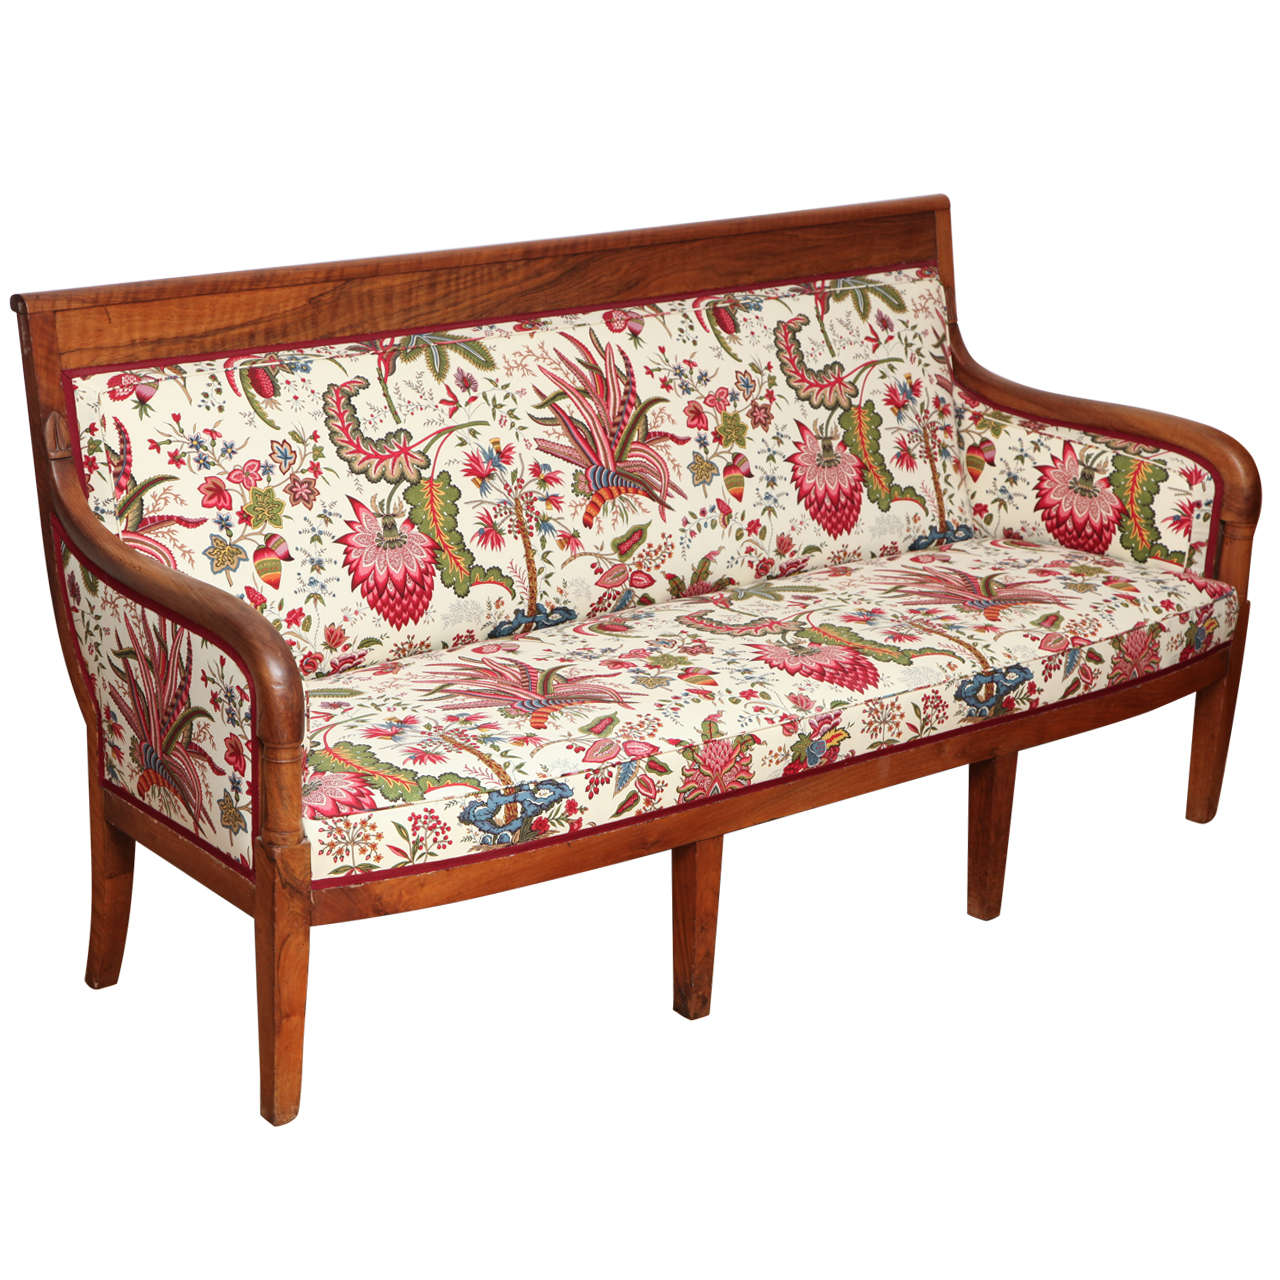 Louis philippe walnut canape with english floral fabric at for Canape in english